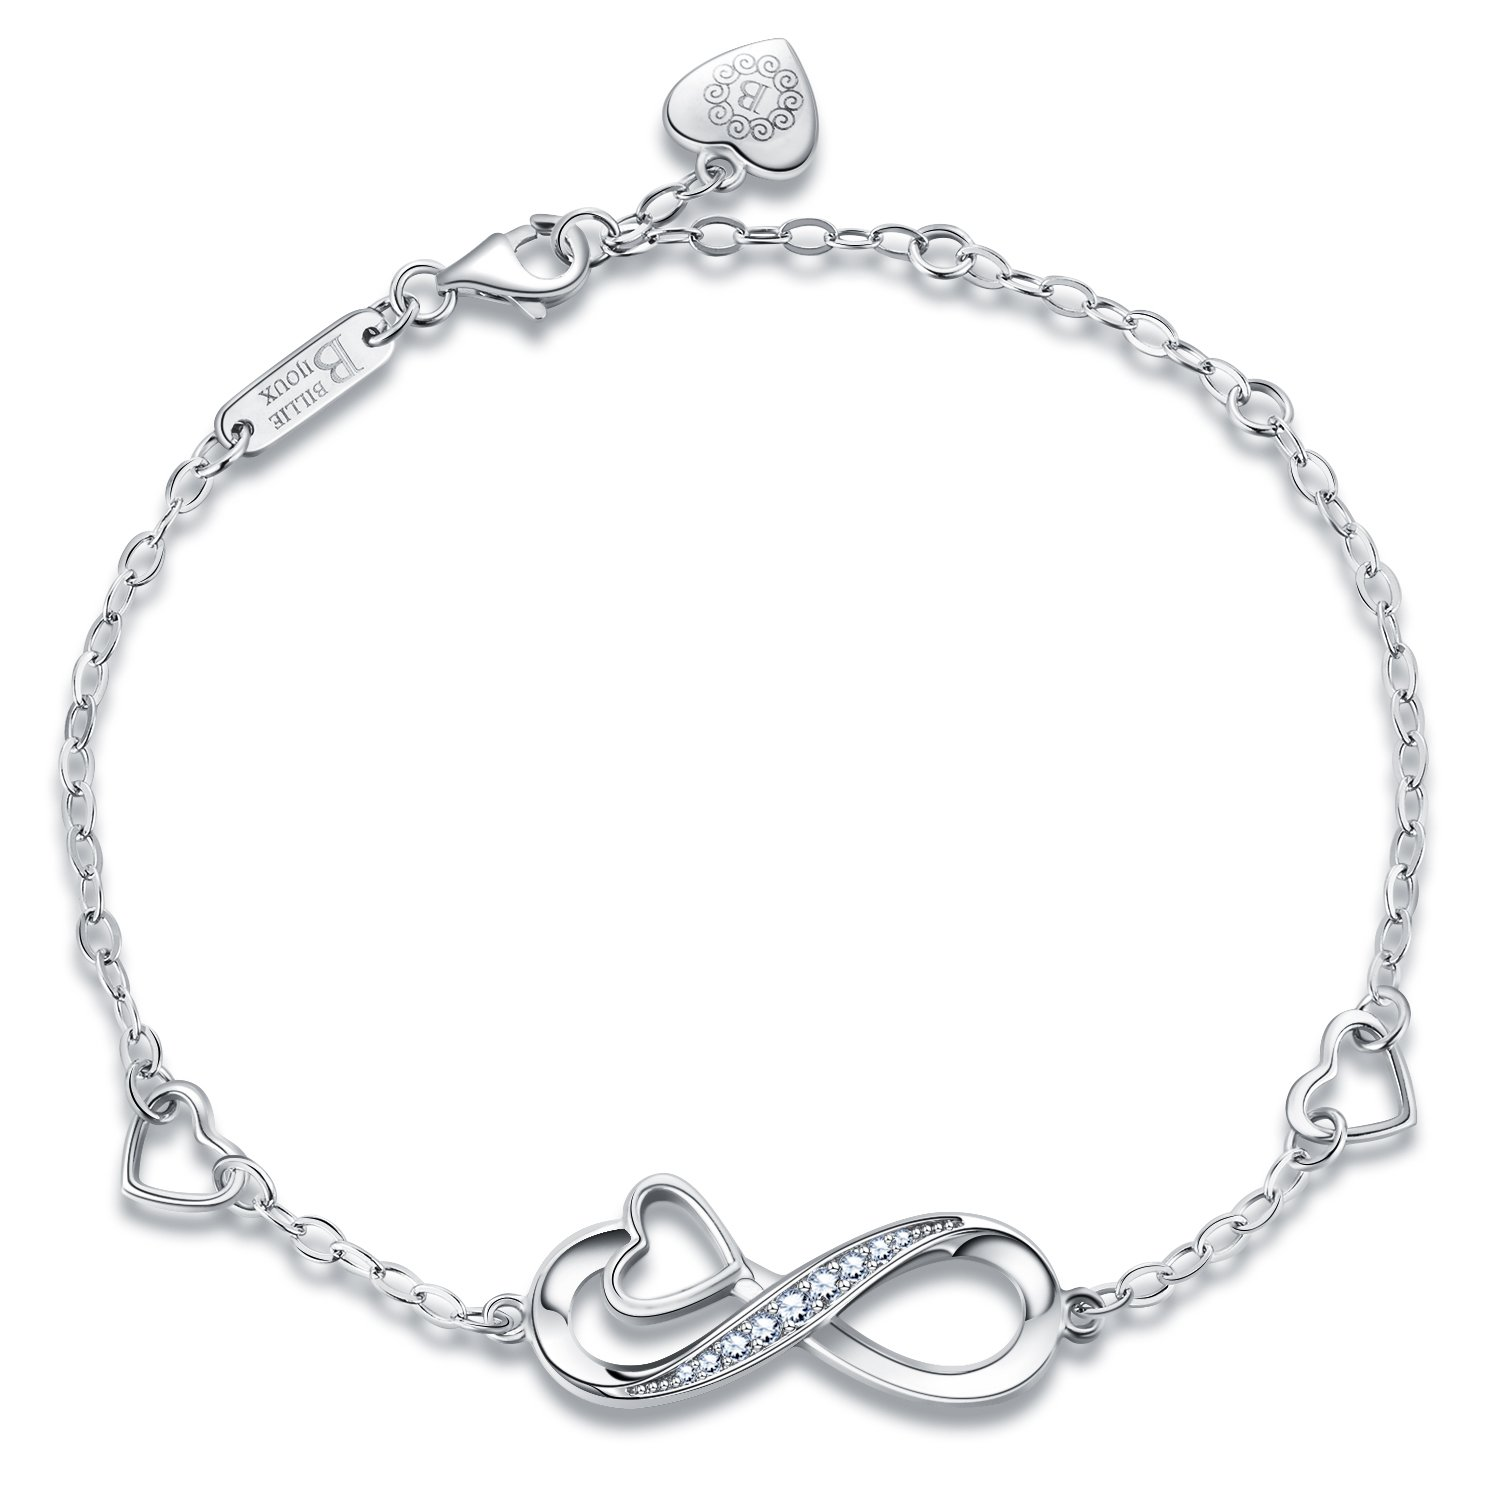 Billie Bijoux 925 Sterling Silver Infinity Heart Endless Love Symbol Charm Adjustable Bracelet White Gold Plated Women' s Gift for Graduation Birthday Valentine's Christmas Day by Billie Bijoux (Image #3)